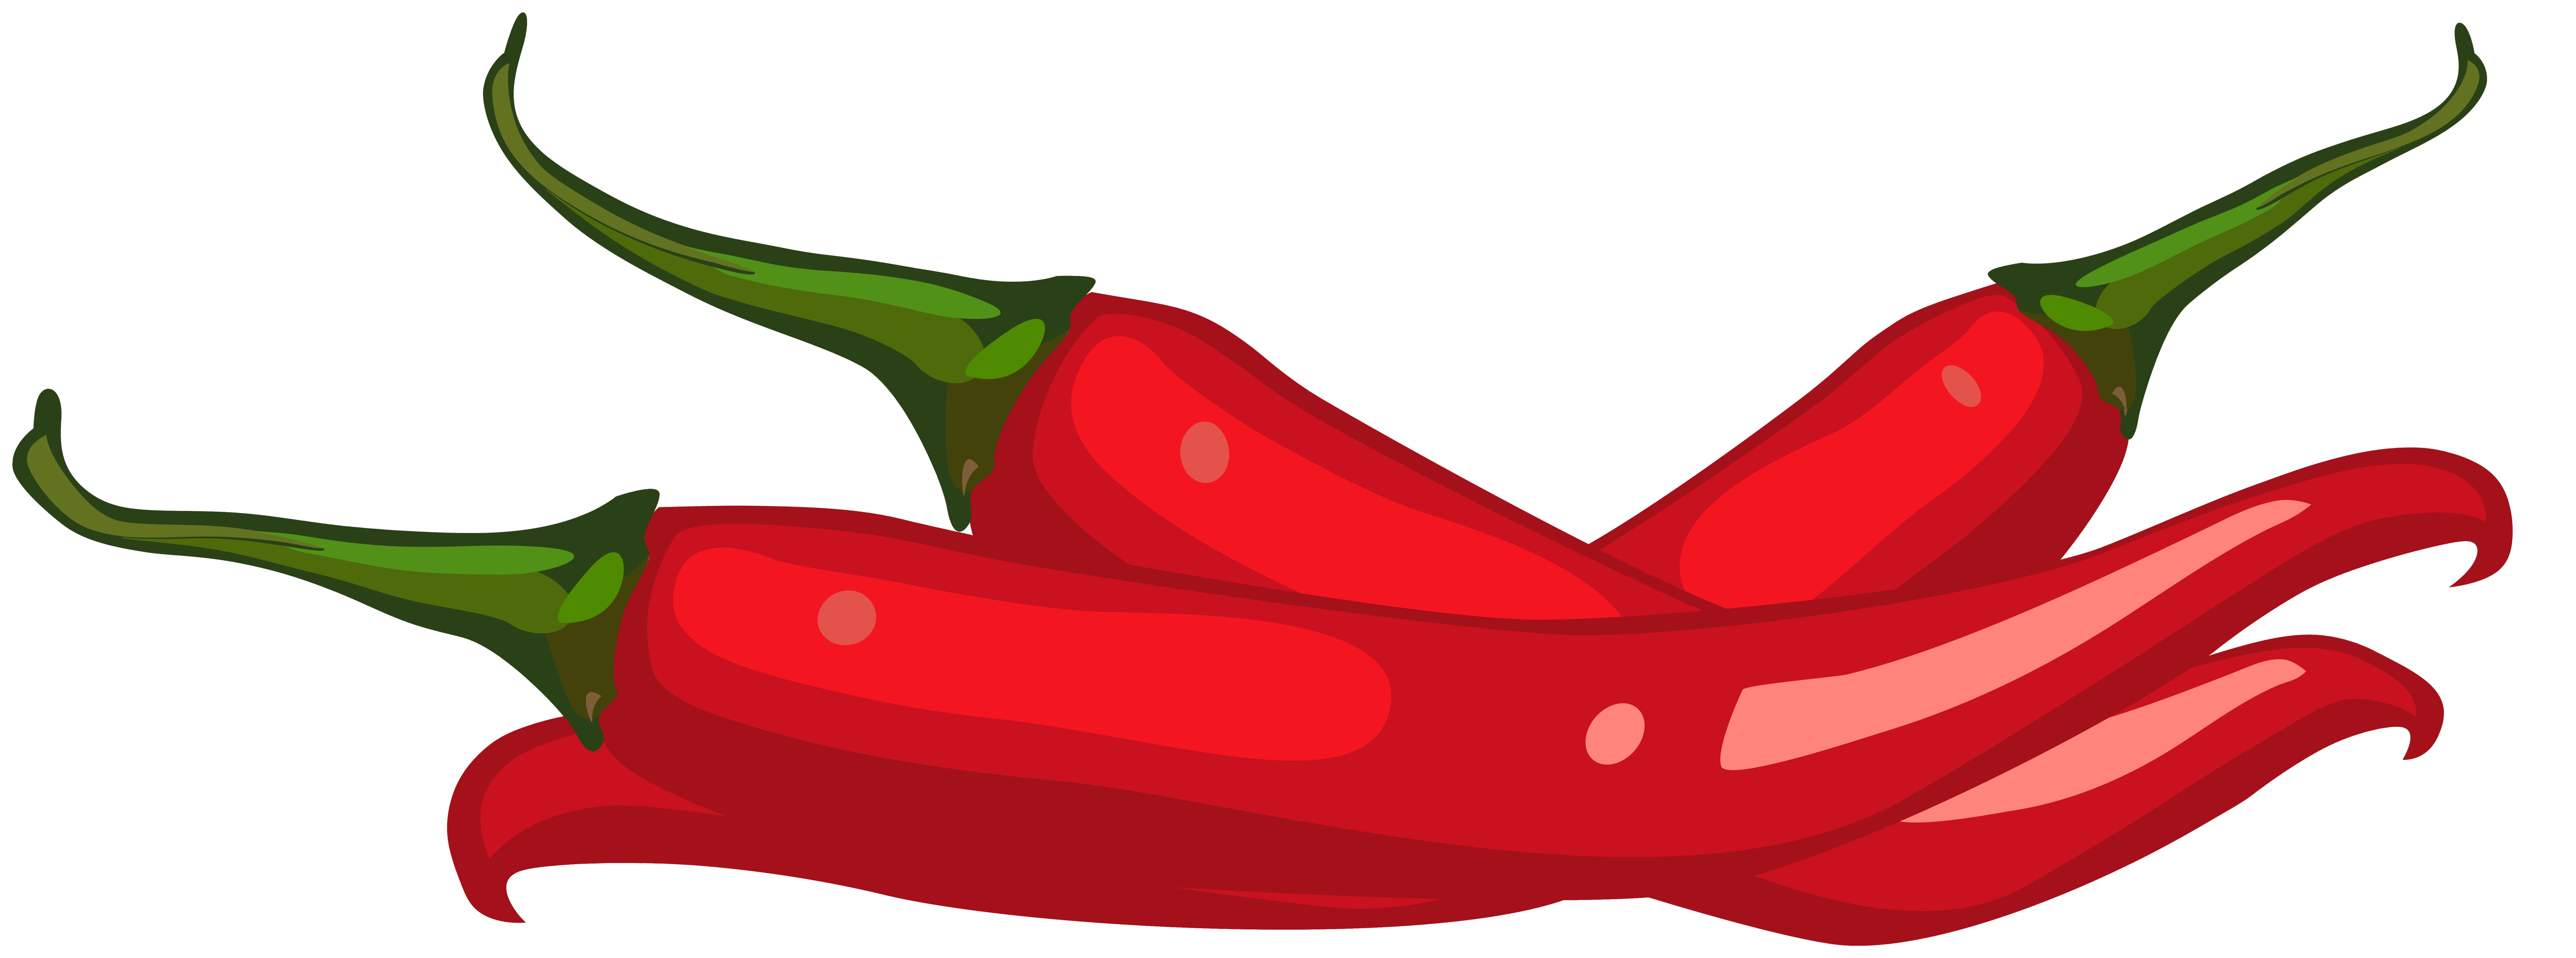 Pepper clipart clip art. Red peppers png best